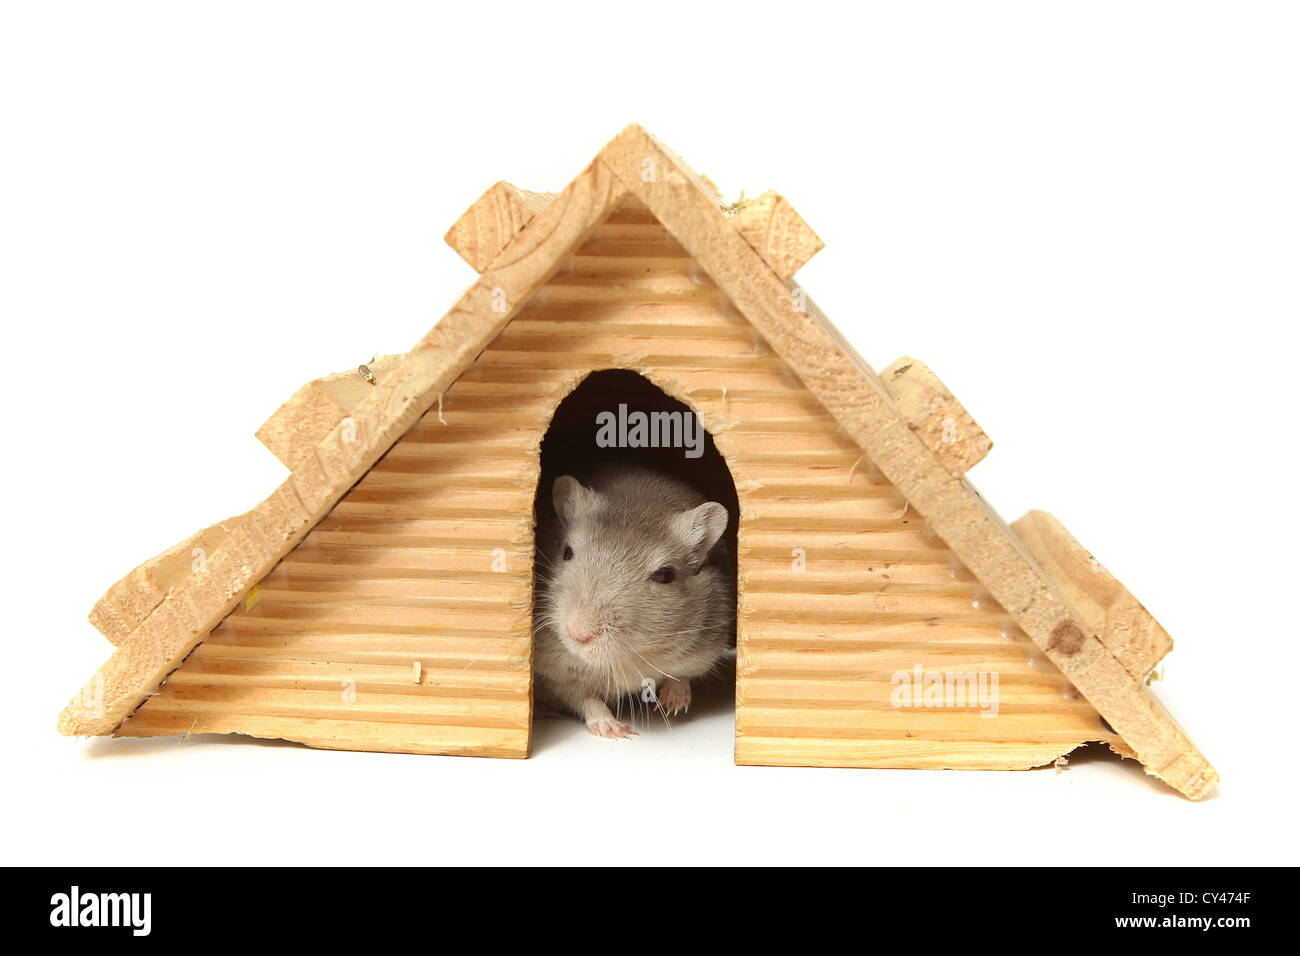 Humour. Successful mouse living in a wooden house. On white Background - Stock Image